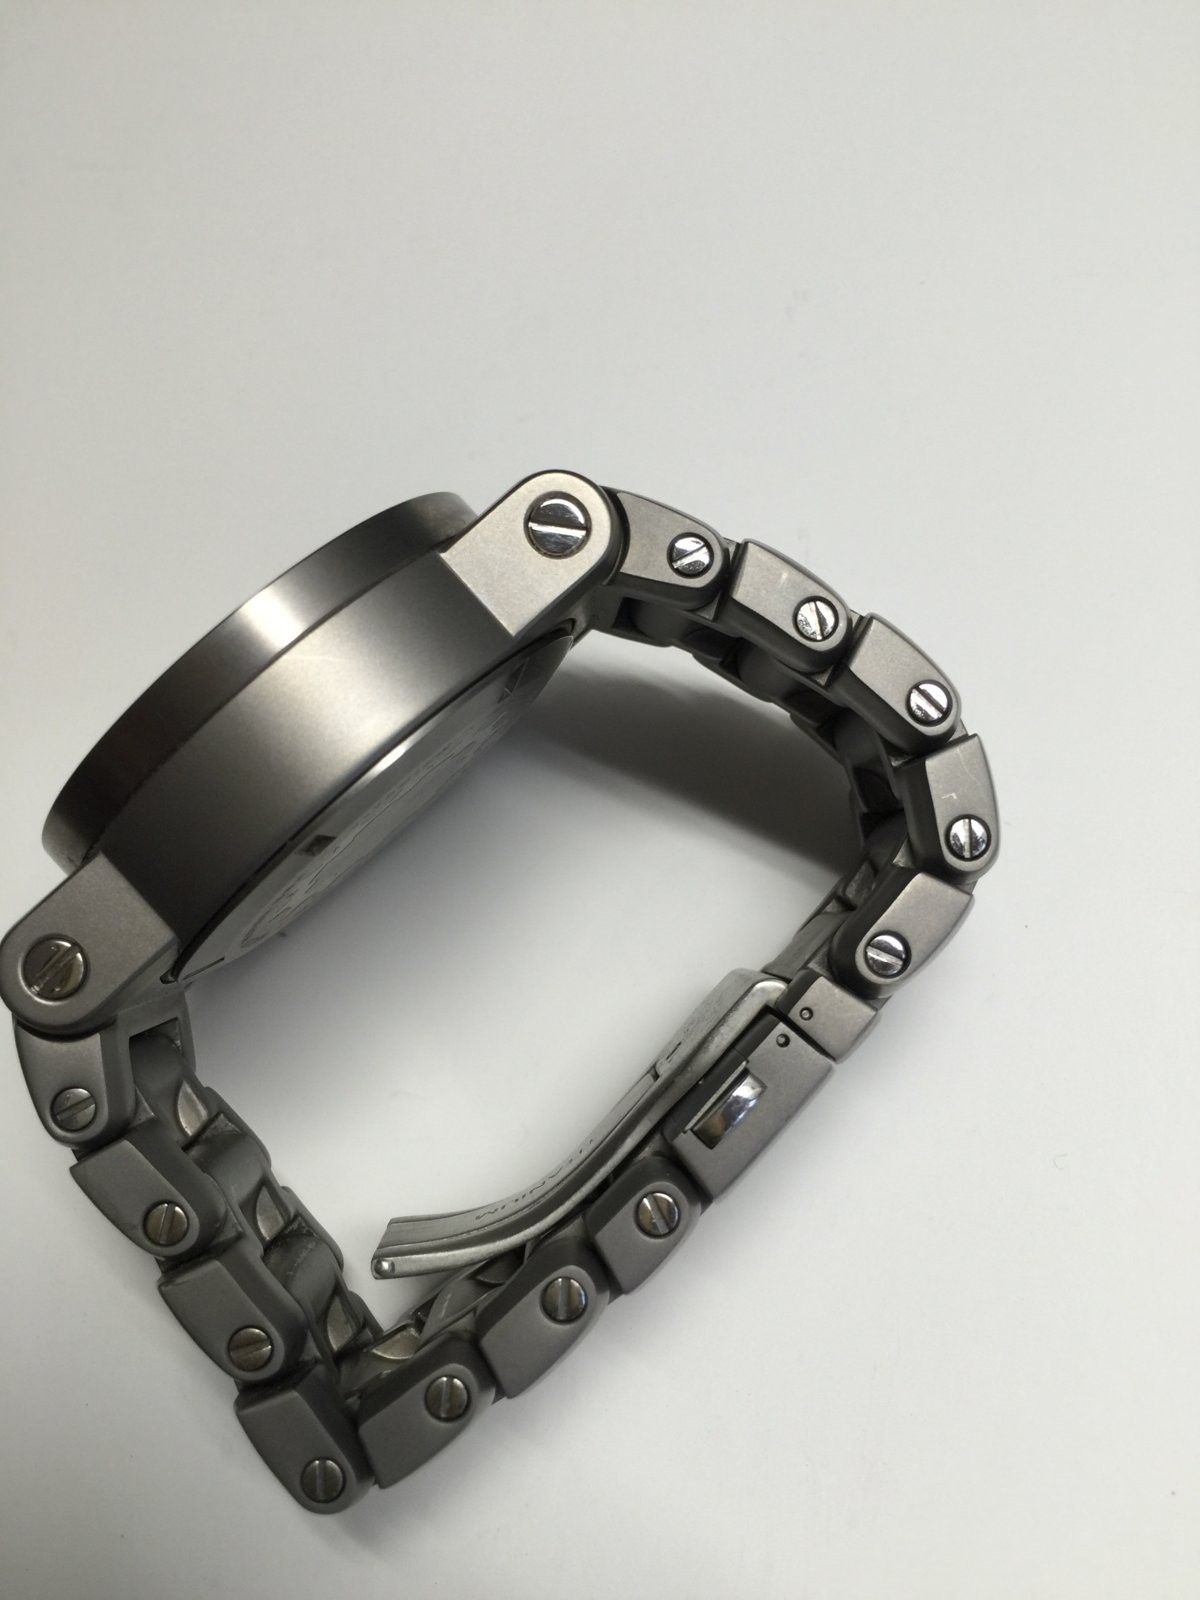 Titanium Gearbox with Titanium band -- price dropped to $750 on 7/6/16 - IMG_4011.JPG